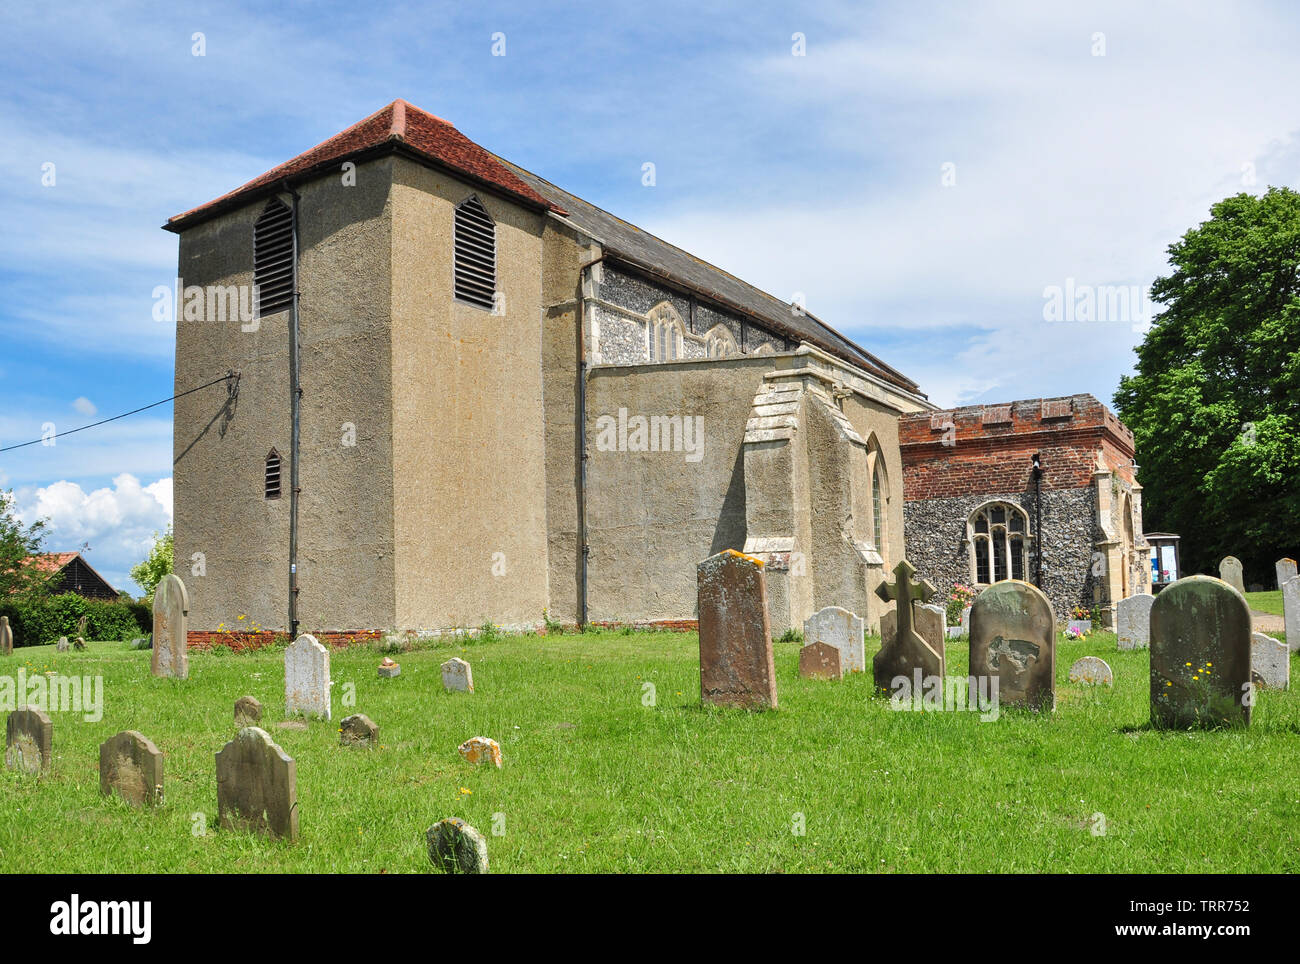 The Church of St Mary (St Mary's), Shotley, Suffolk, England, UK - Stock Image